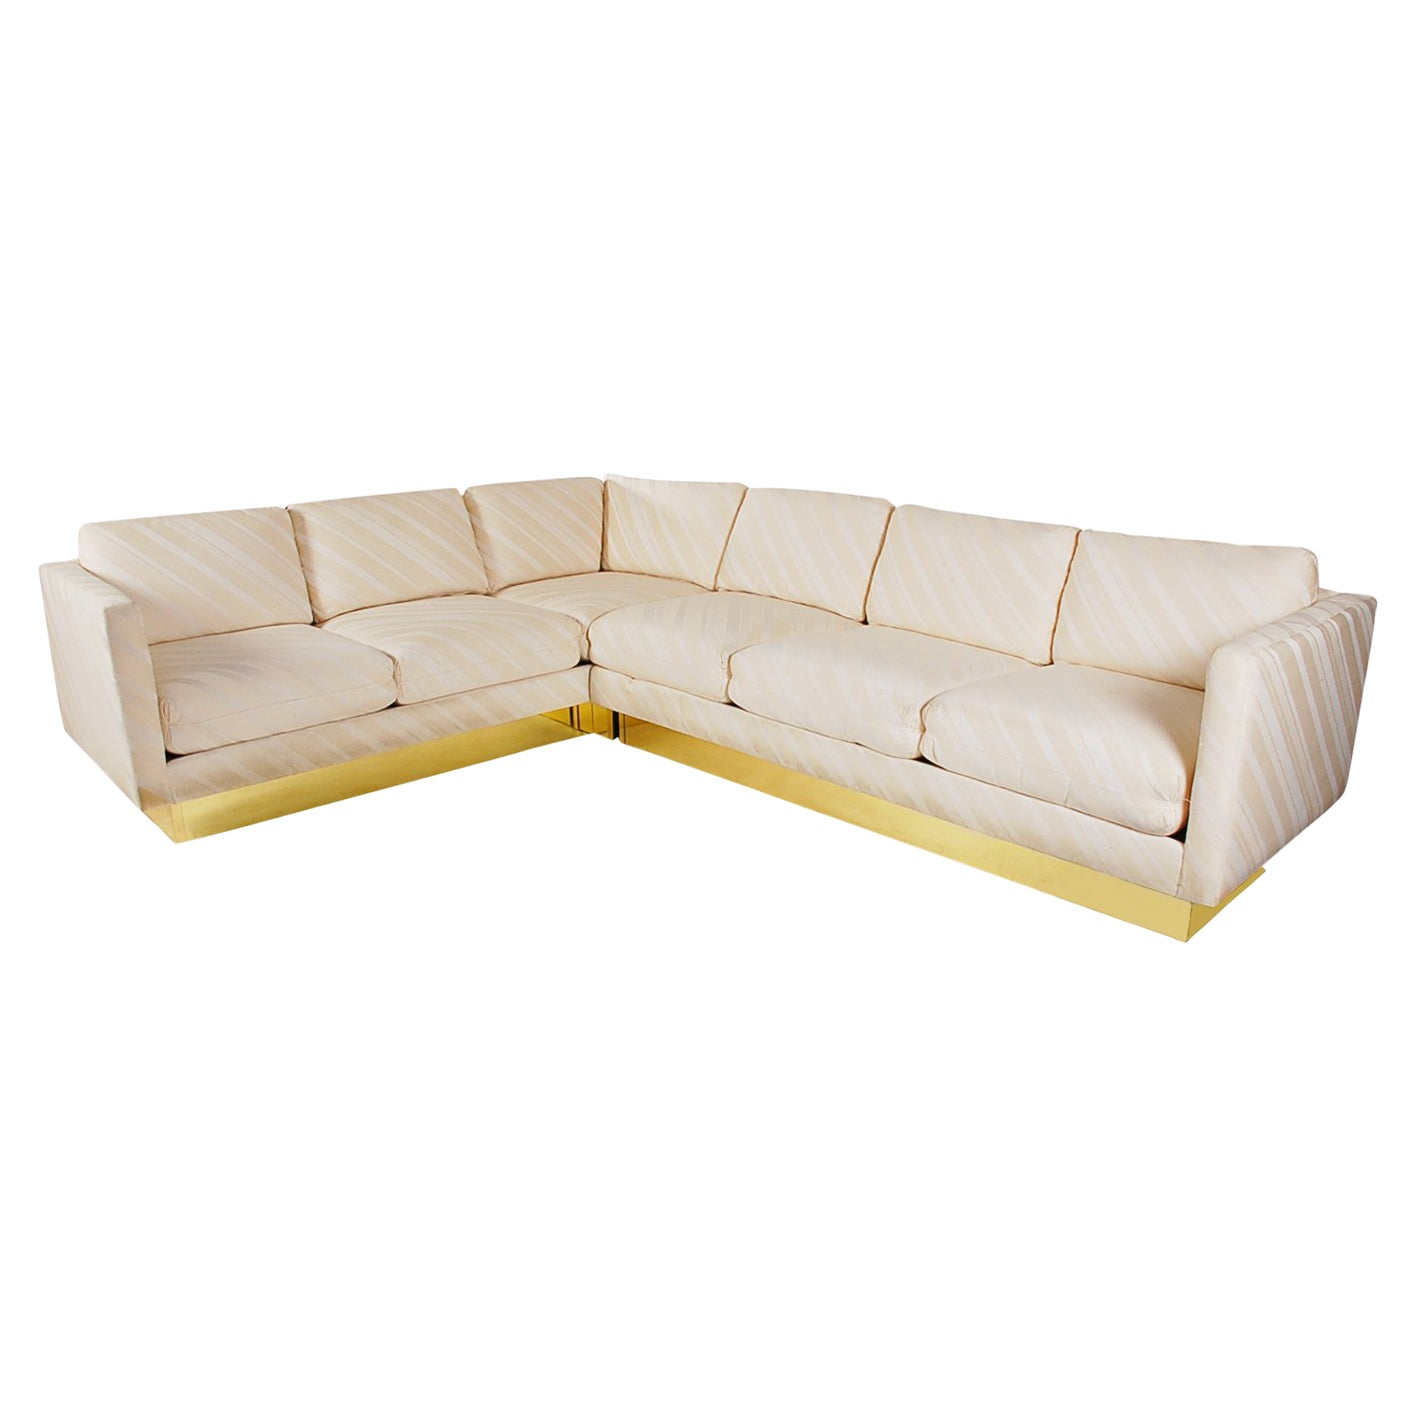 Mid-Century Modern Milo Baughman Sectional Sofa L Shaped with Brass Plinth Base